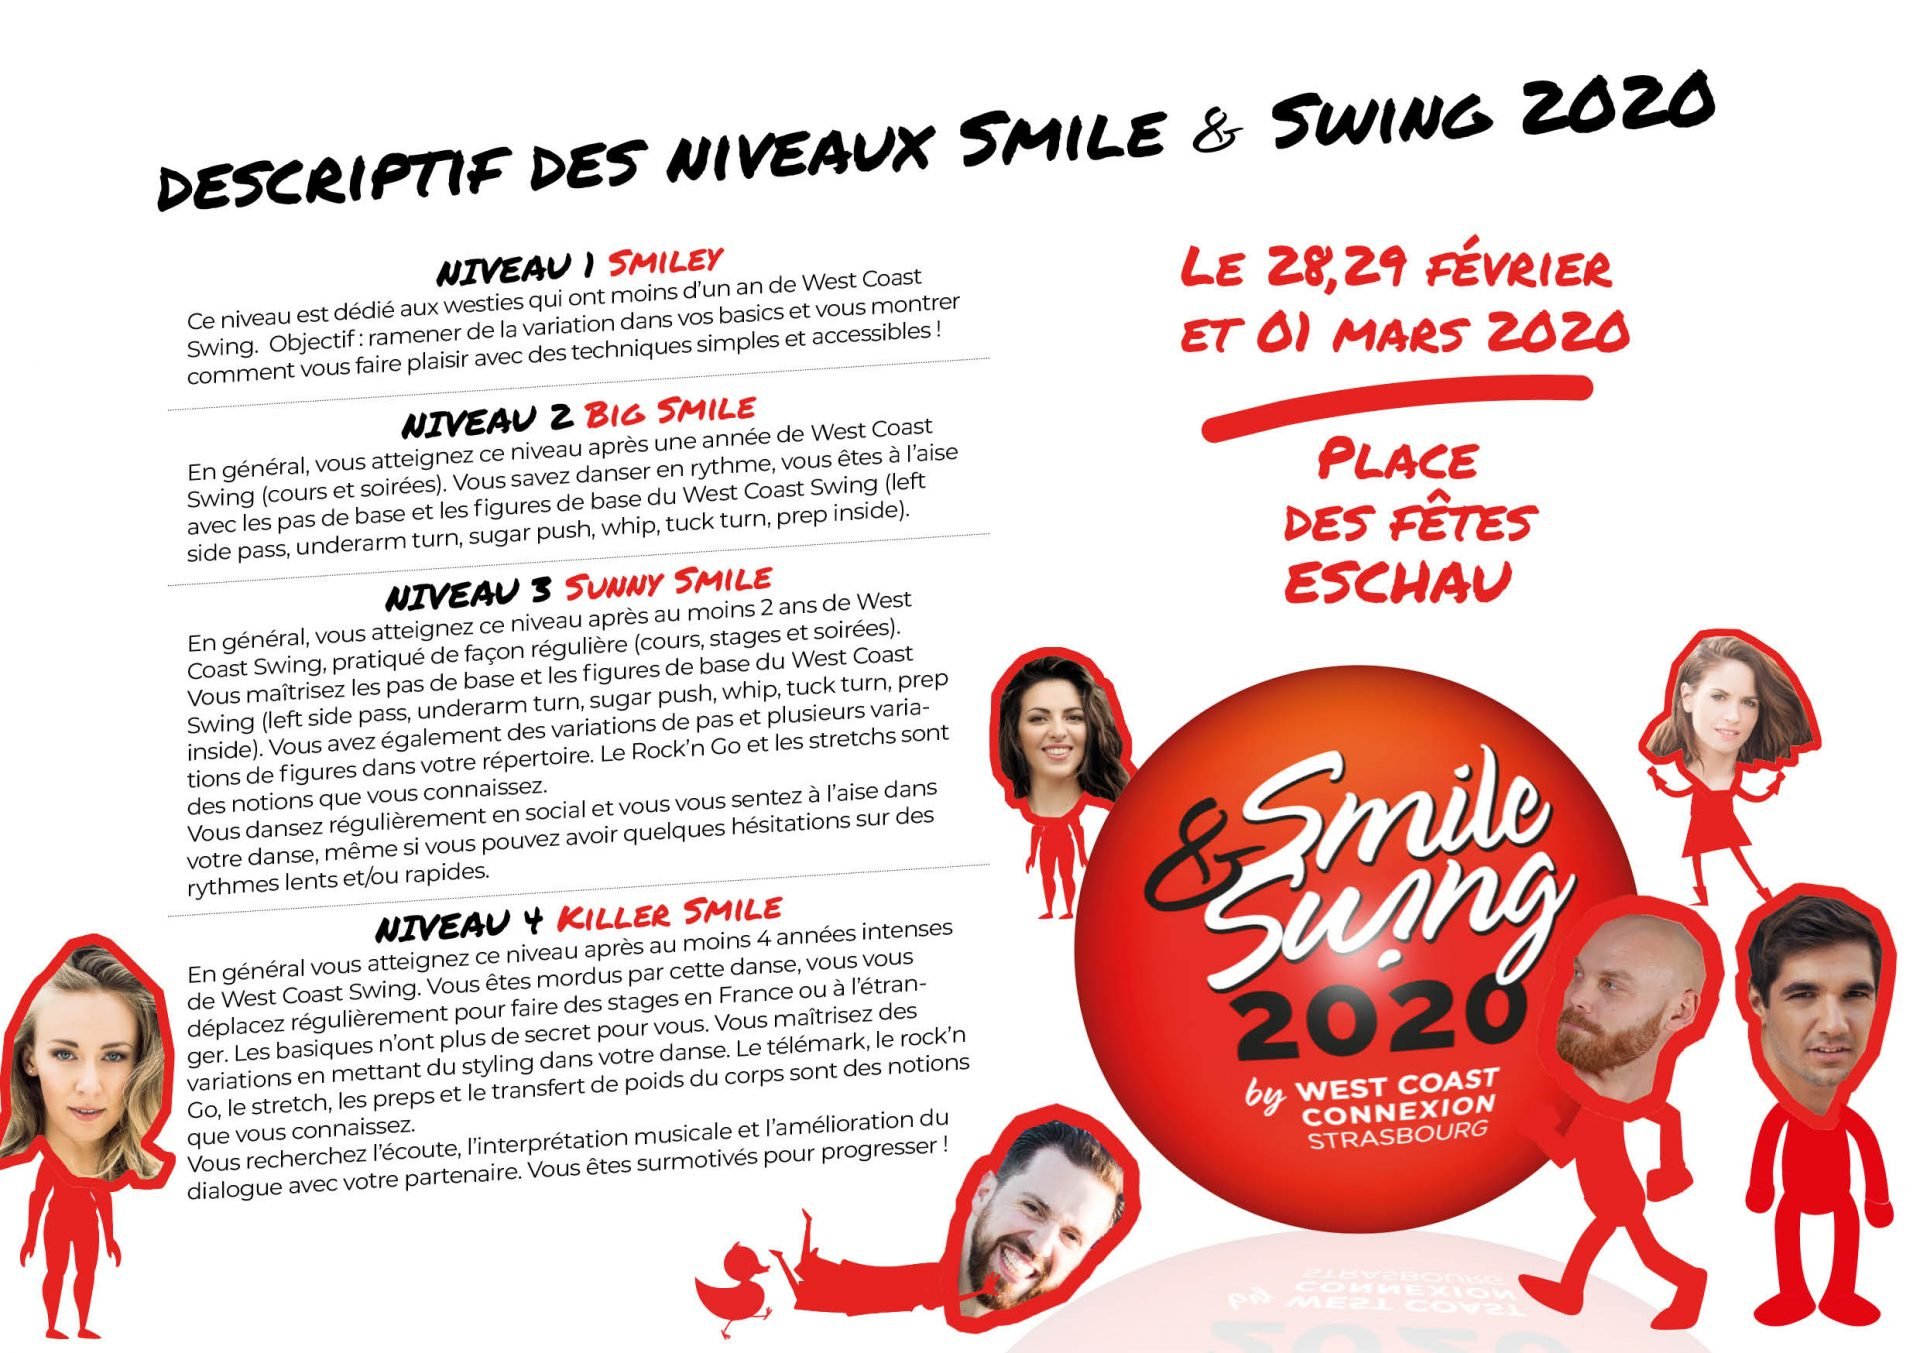 Description des niveaux du Smile & Swing 2020